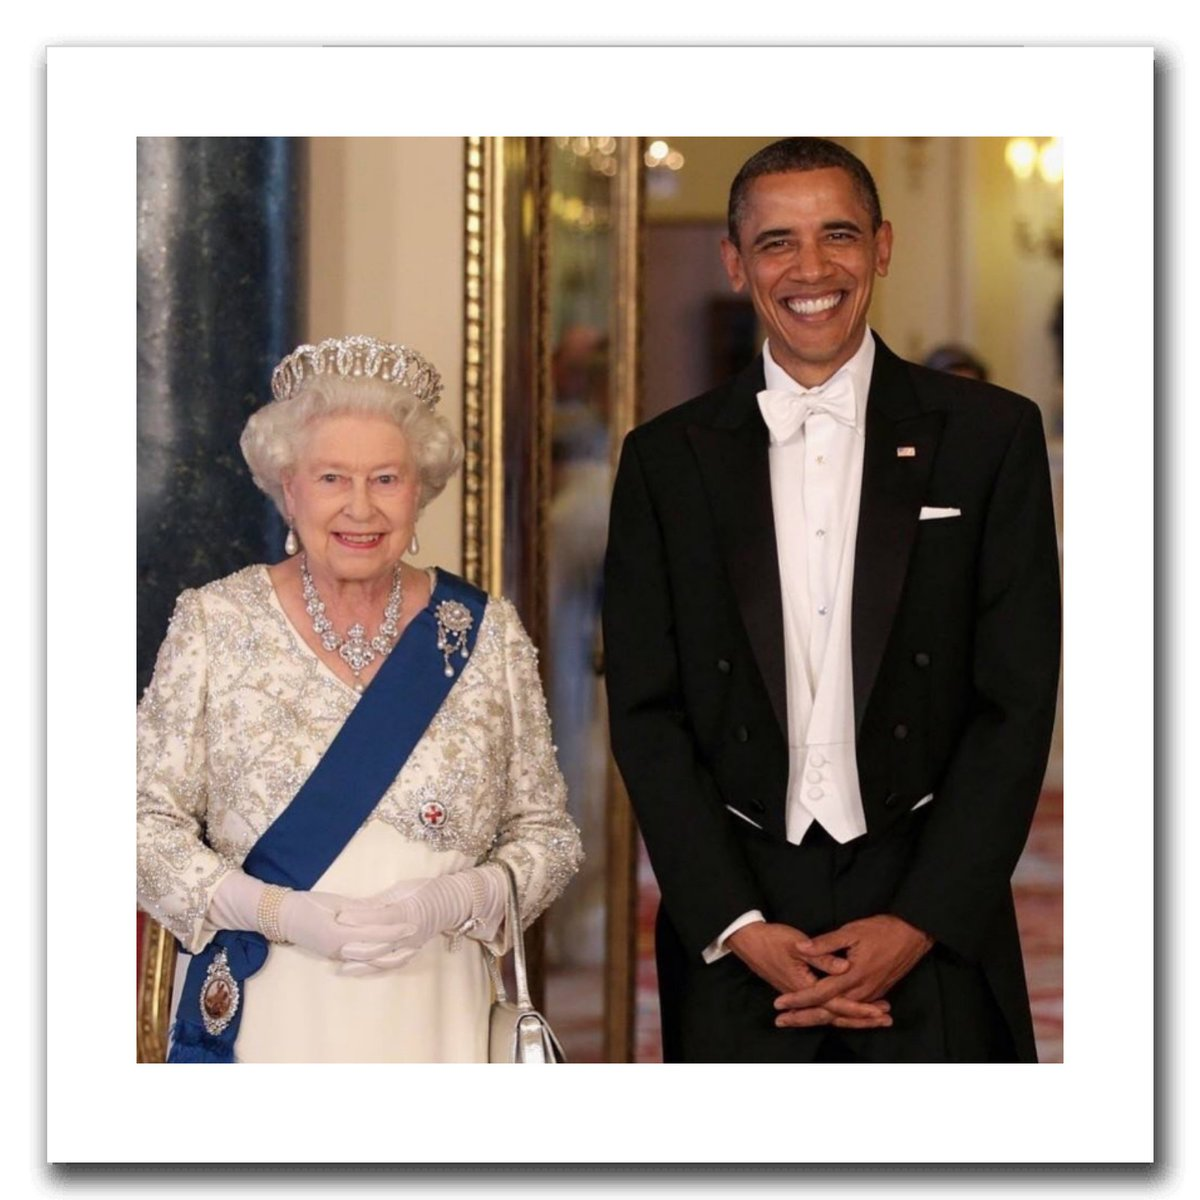 HAPPY BIRTHDAY TO PRESIDENT OBAMA  queenelizabeth royalfamily royals royalty britishroyalfamily queen royal Unitedkingdom thecrown england kensingtonpalace uk london buckinghampalace queenelizabethii britishroyals britishhistory GodSaveTheQueen queenElizabethII  worldhistory pic.twitter.com/9K4opXnmNZ